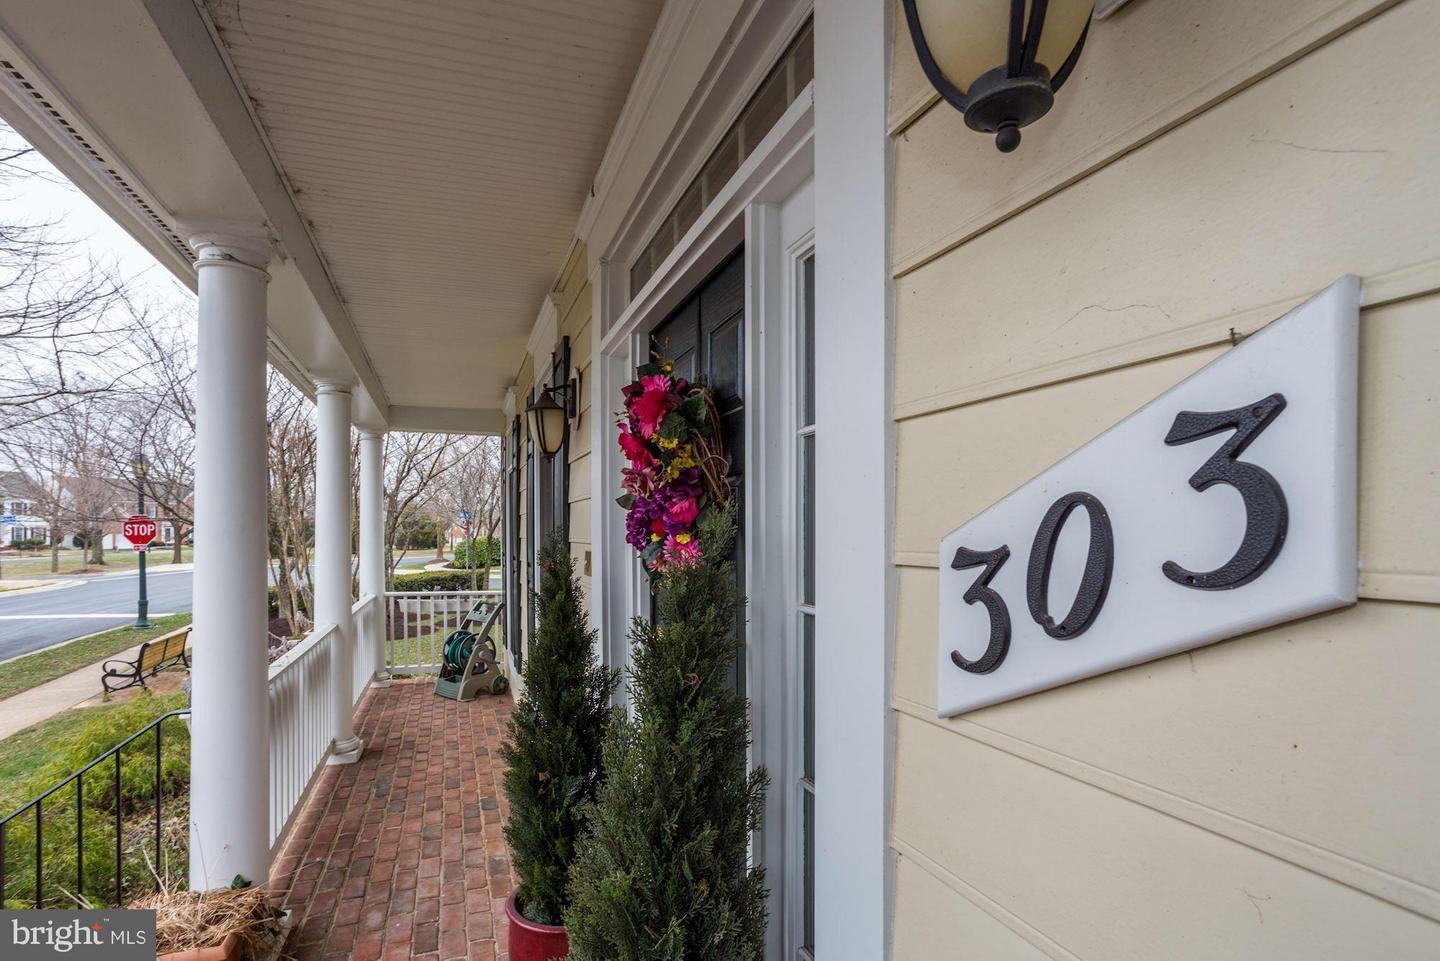 Additional photo for property listing at 303 Oak Knoll Dr Rockville, Maryland 20850 United States